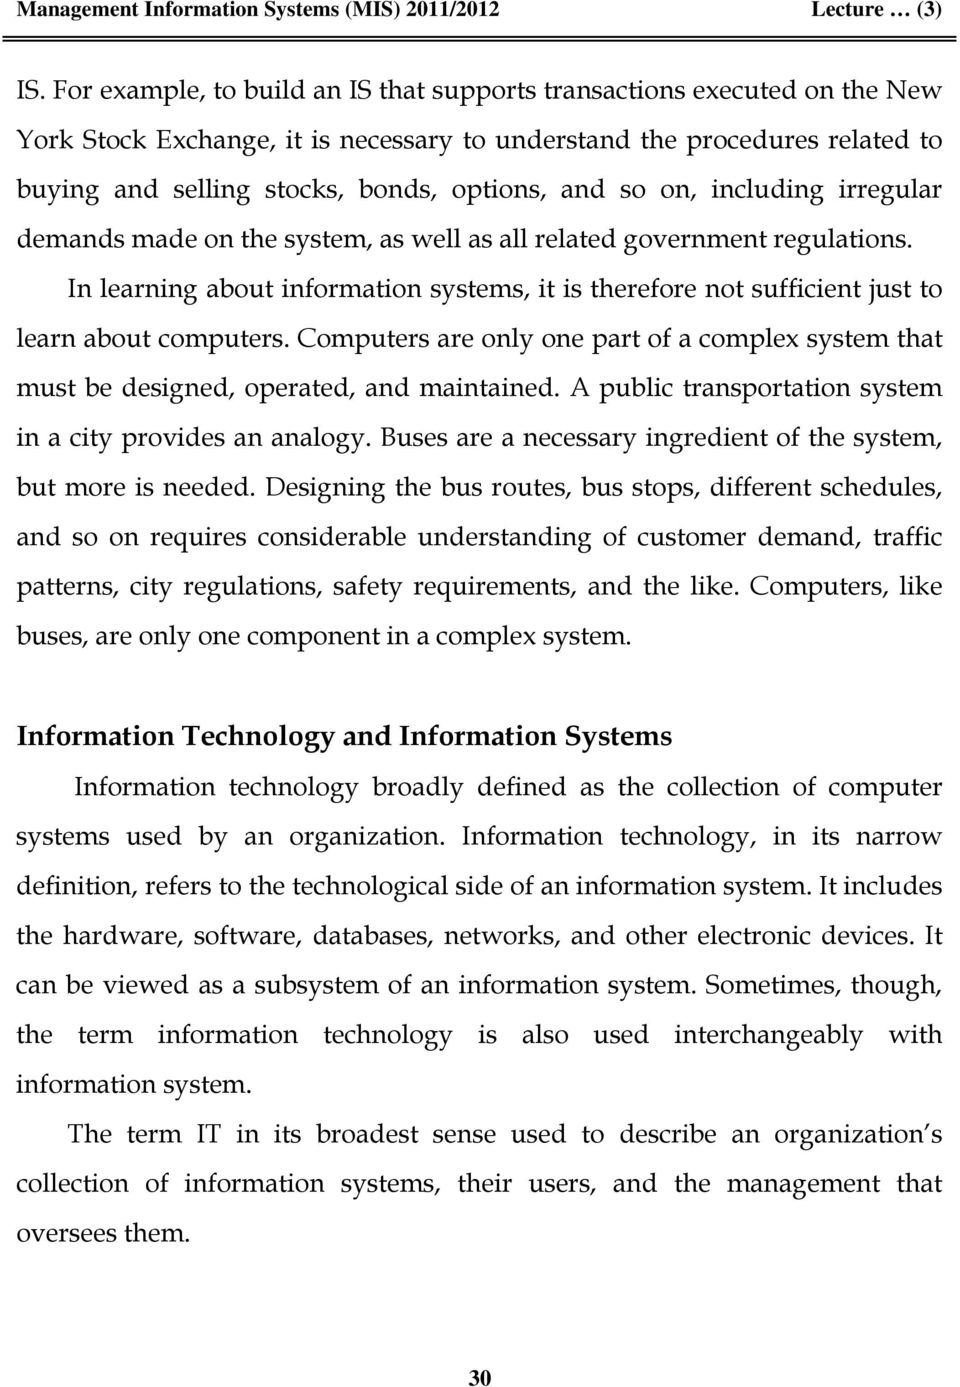 In learning about information systems, it is therefore not sufficient just to learn about computers. Computers are only one part of a complex system that must be designed, operated, and maintained.